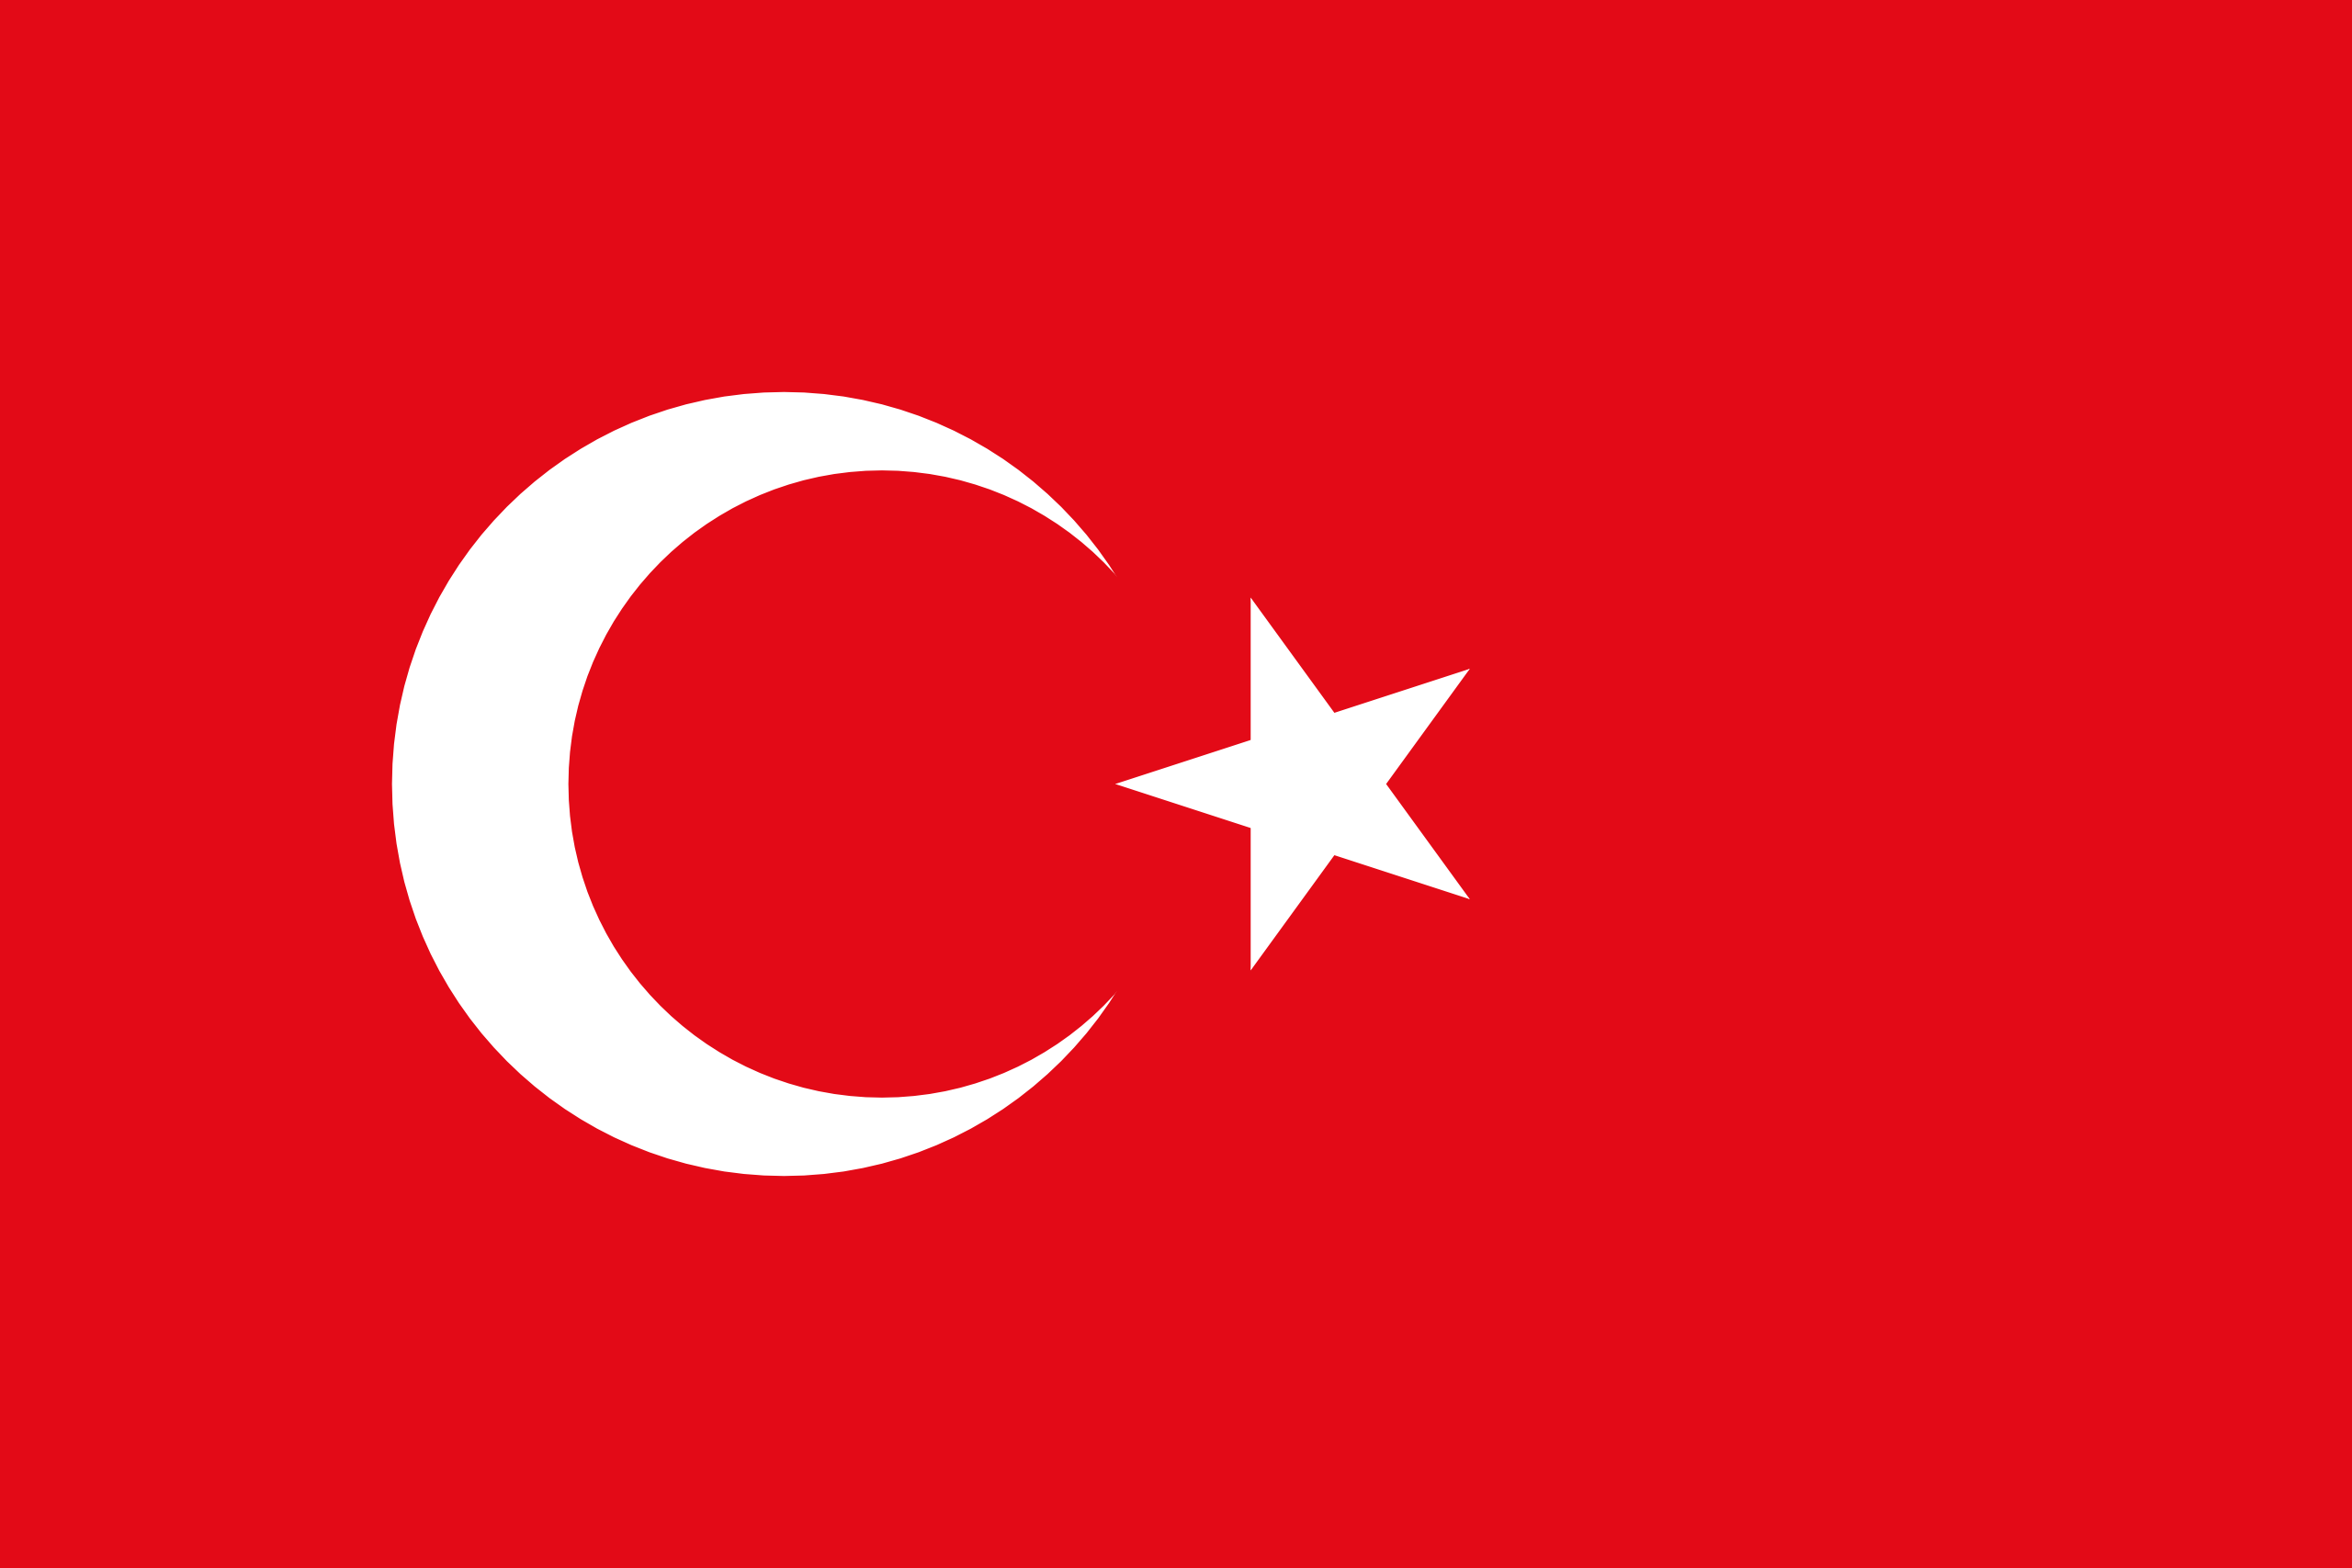 https://aerospaceexport.com/wp-content/uploads/2019/10/turkey.png